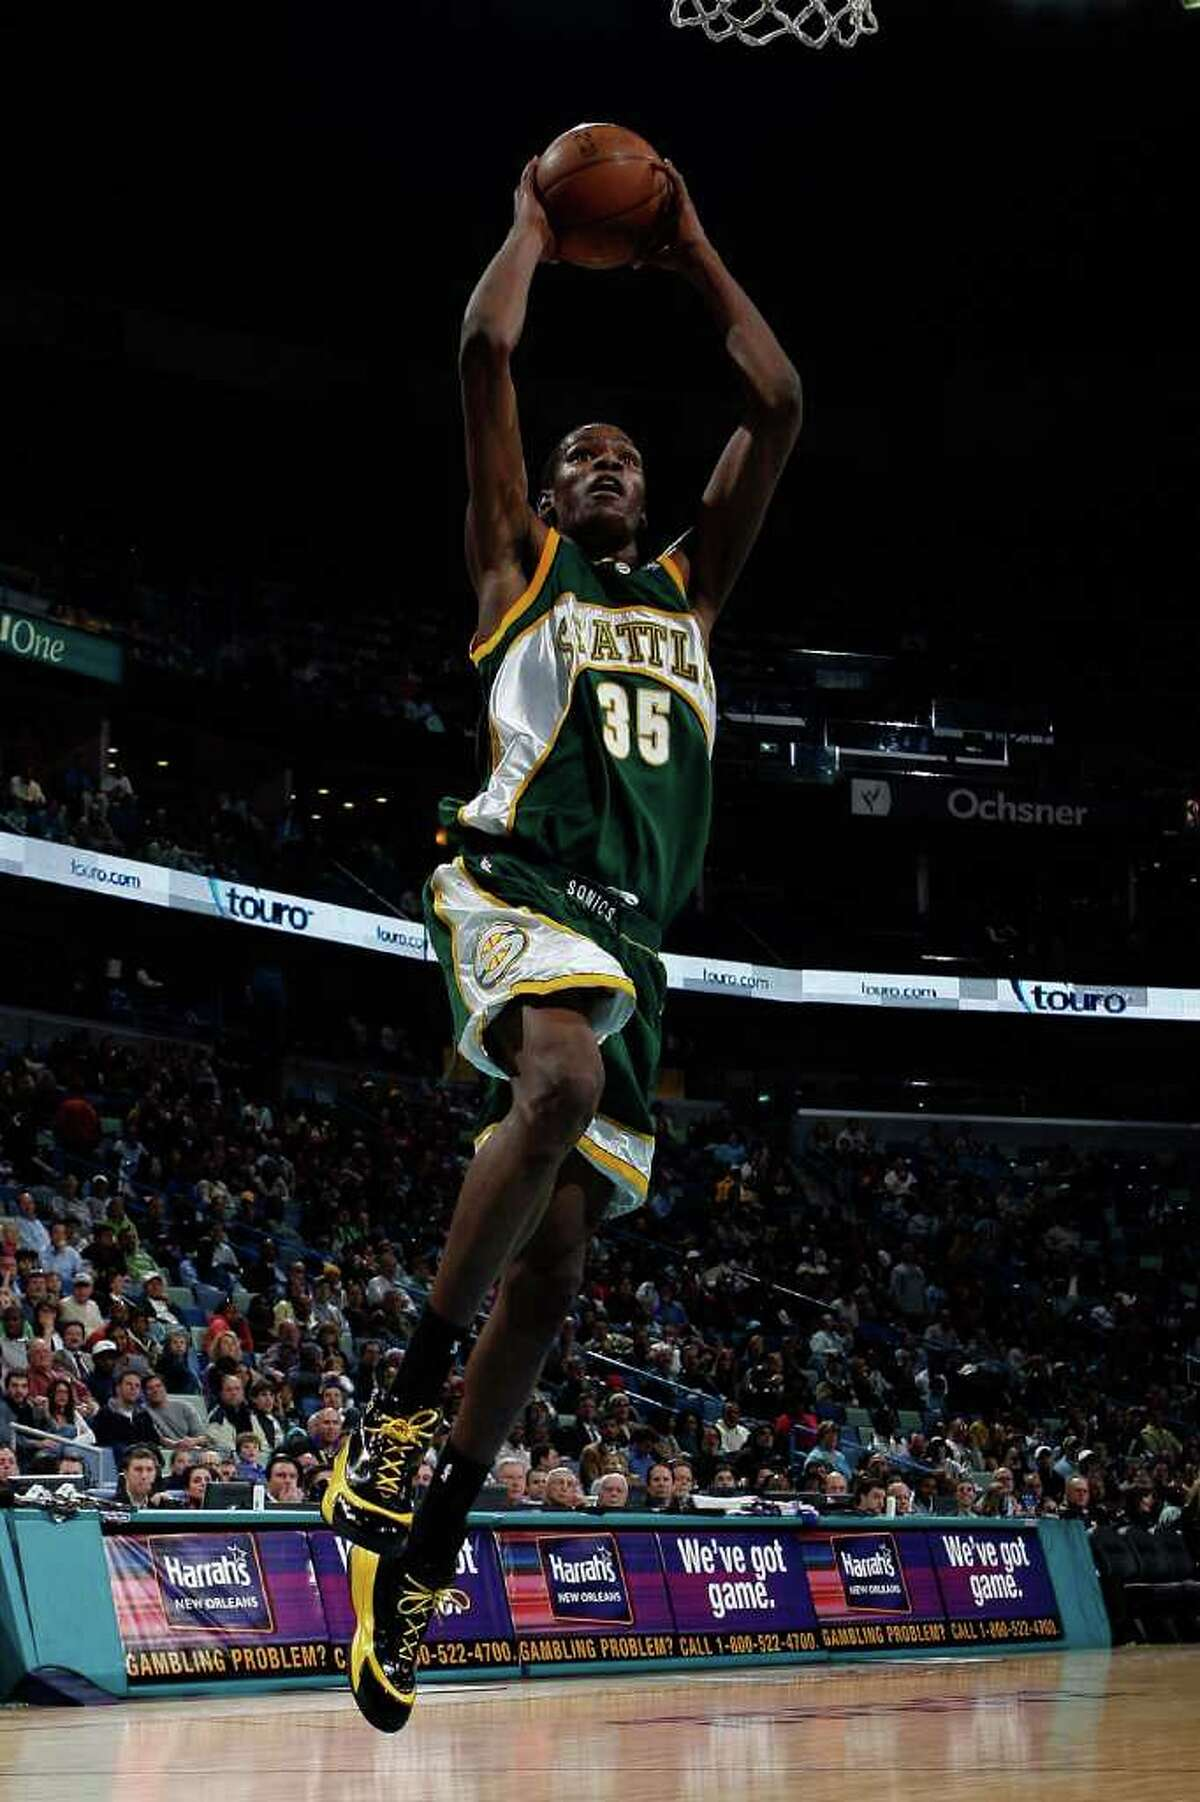 Kevin Durant: Sure, he only played one season in KeyArena before the team relocated, but Durant was the lone bright spot in a season that saw the front office strip the team of its Seattle roots. Ray Allen and Rashard Lewis? Gone. So that left the team in the hands of the 19-year-old Durant, who, came away with the Rookie of The Year Award. He averaged 20.3 points per game, breaking a rookie record that had stood since the inaugural season when Bob Rule averaged 18.1. Sadly, Seattle isn't able to enjoy the success of both its old franchise and the new face of it. Durant has led the NBA in scoring for the past two seasons.